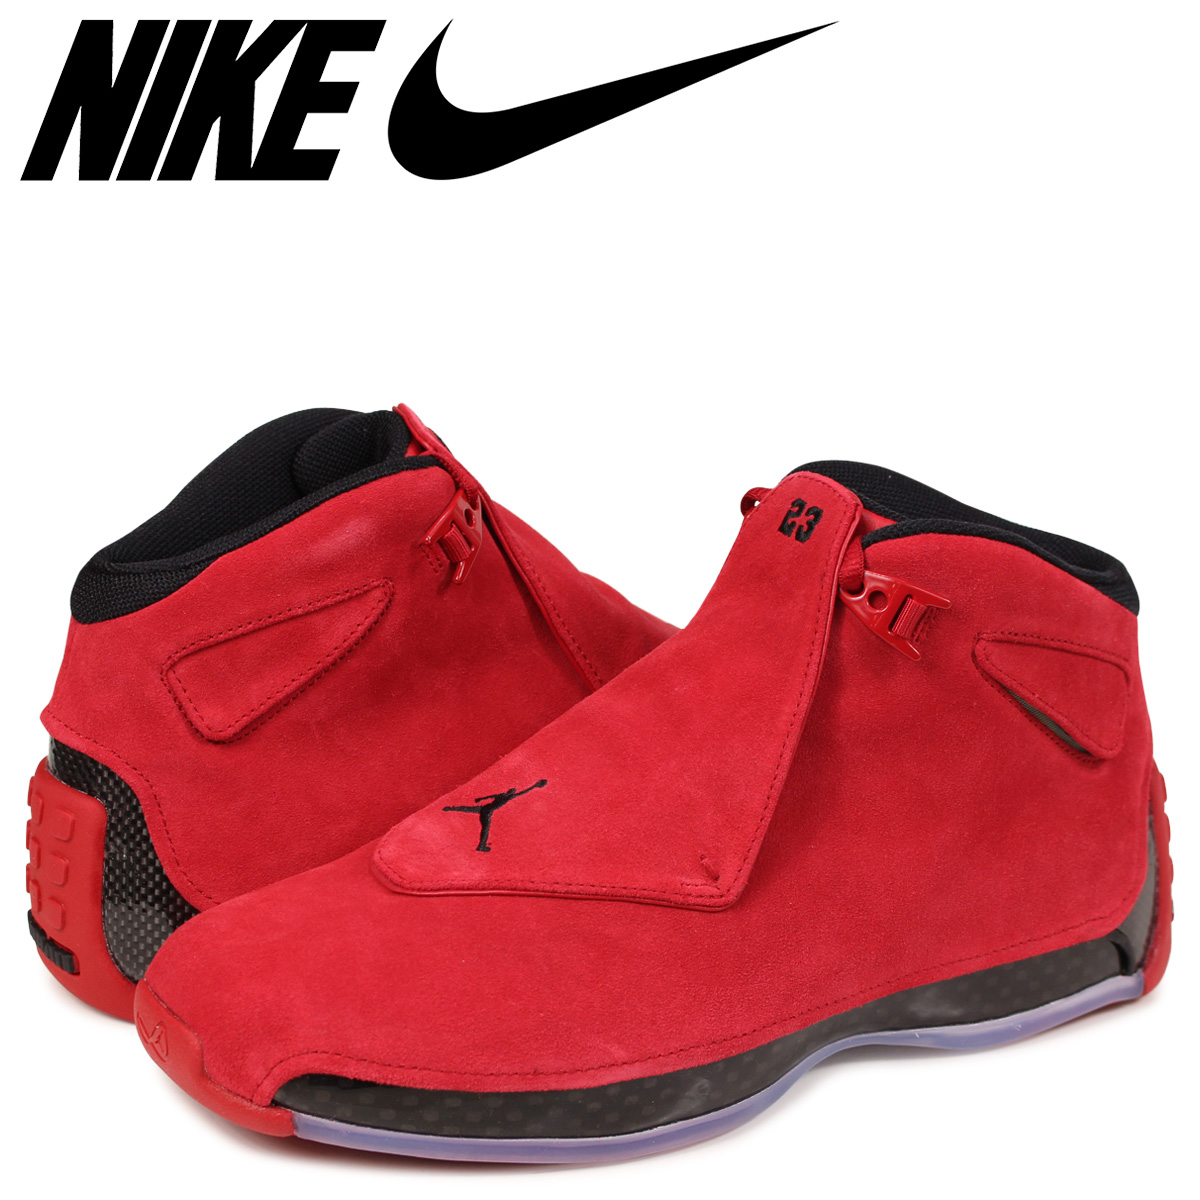 size 40 eb135 9d792 ... czech nike air jordan 18 retro nike air jordan 18 nostalgic sneakers  men aa2494 601 red